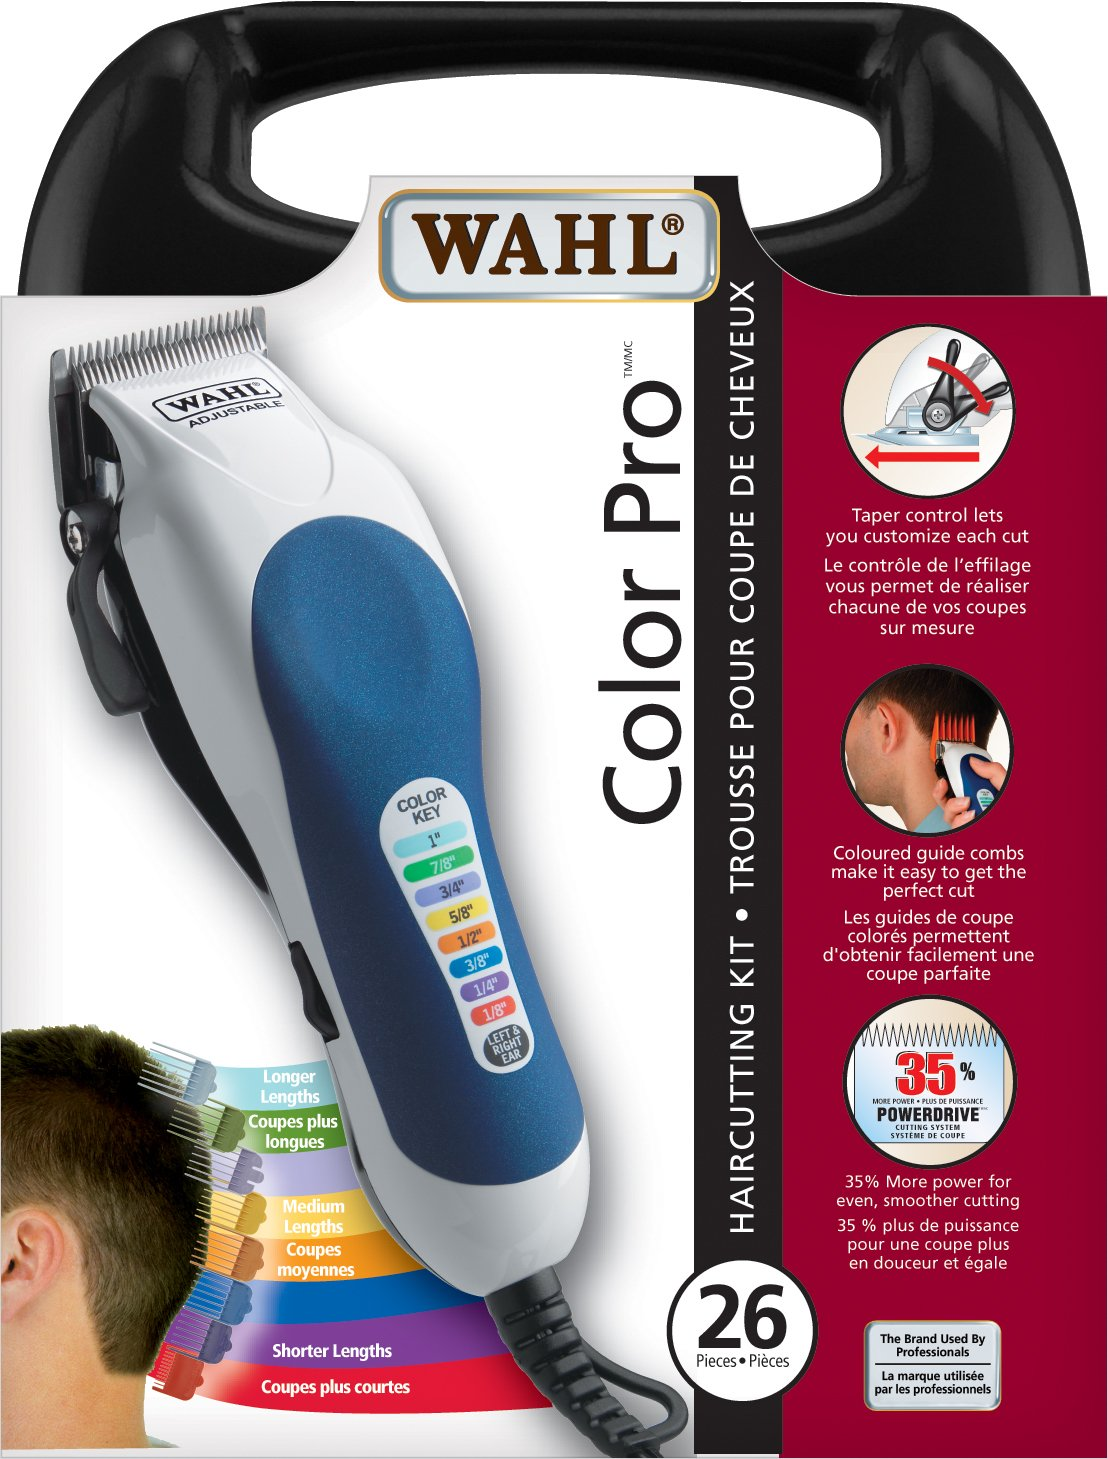 Wahl 3183 Color Pro Haircutting Kit Wahl Canada